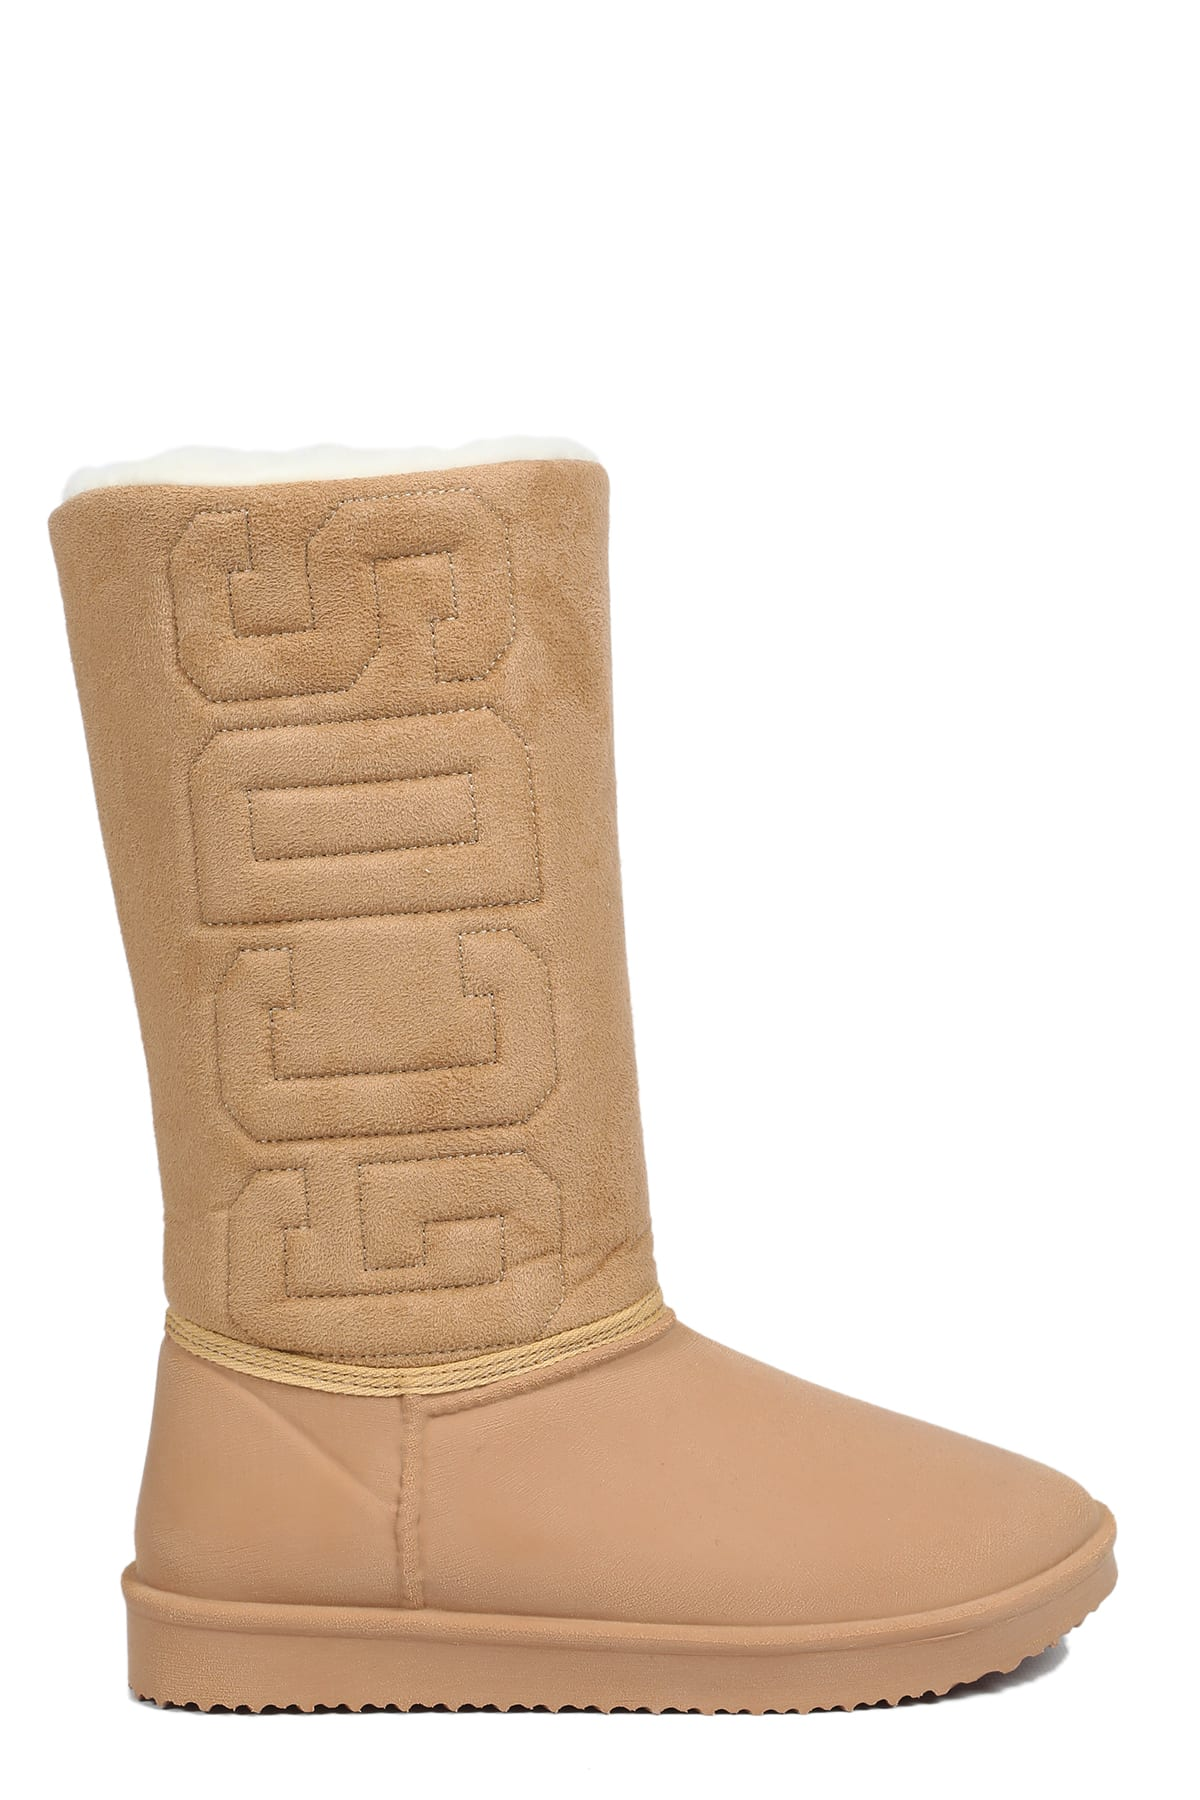 Gcds Suedes WINTER SHEARLING BOOT